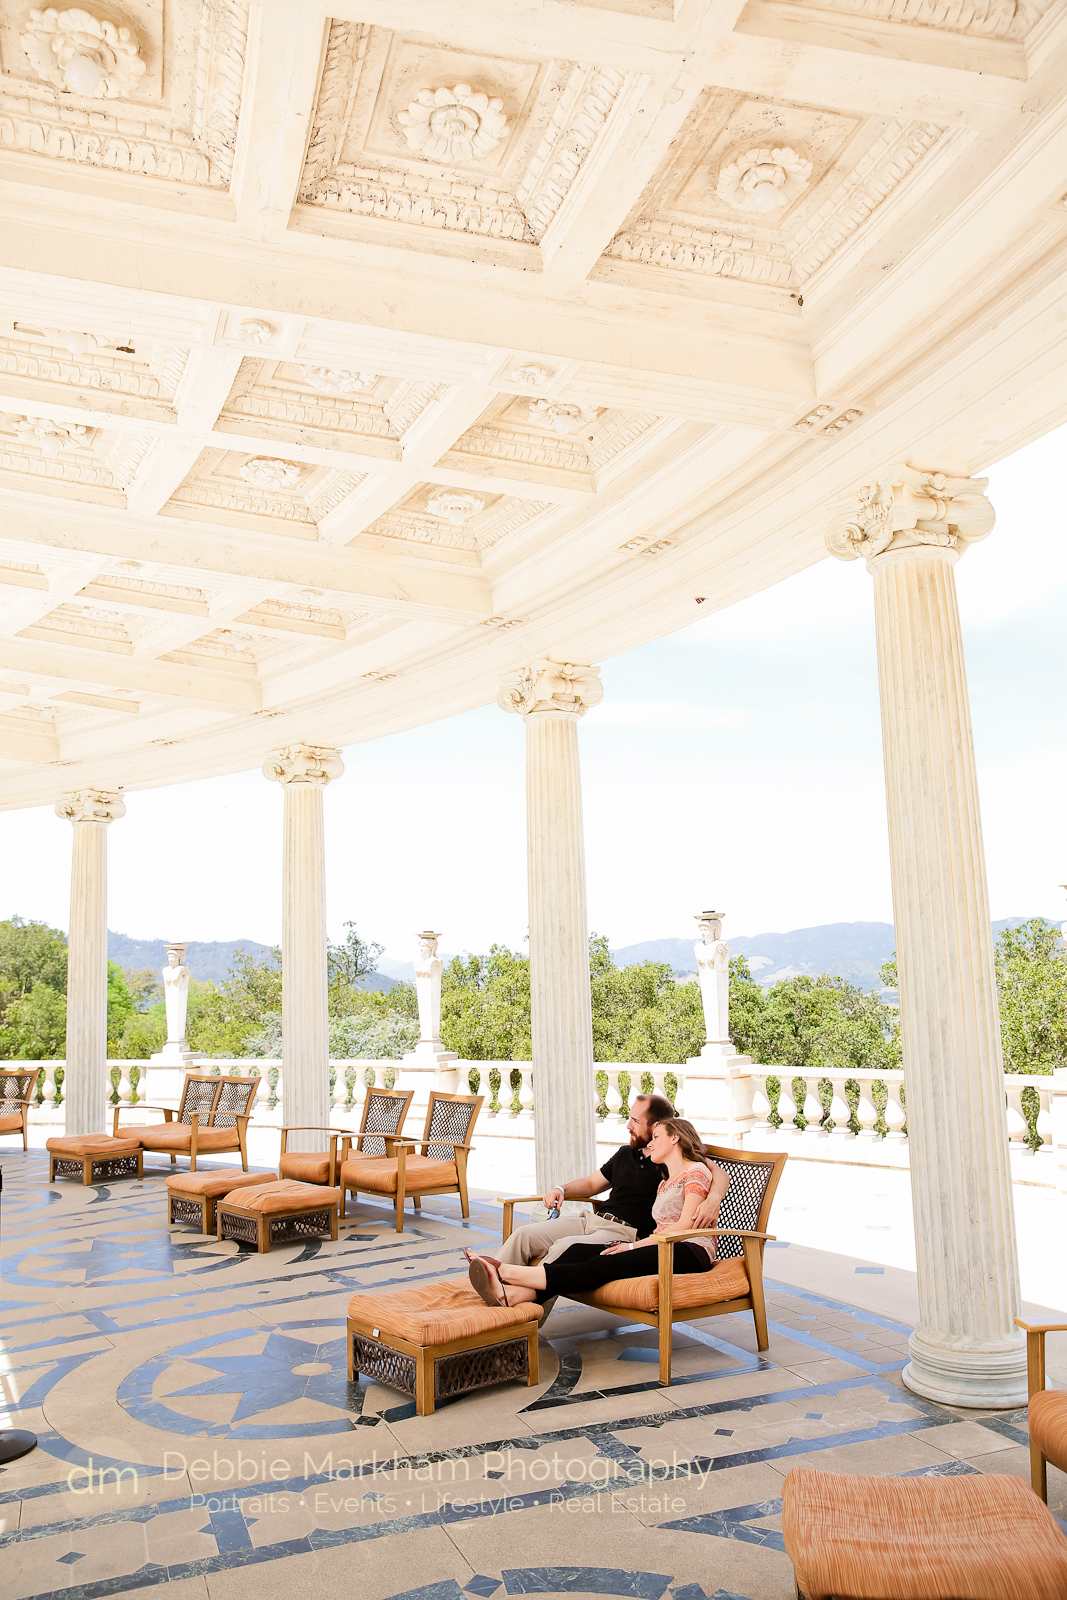 4-29-15 Surprise Proposal at Hearst Castle-5467